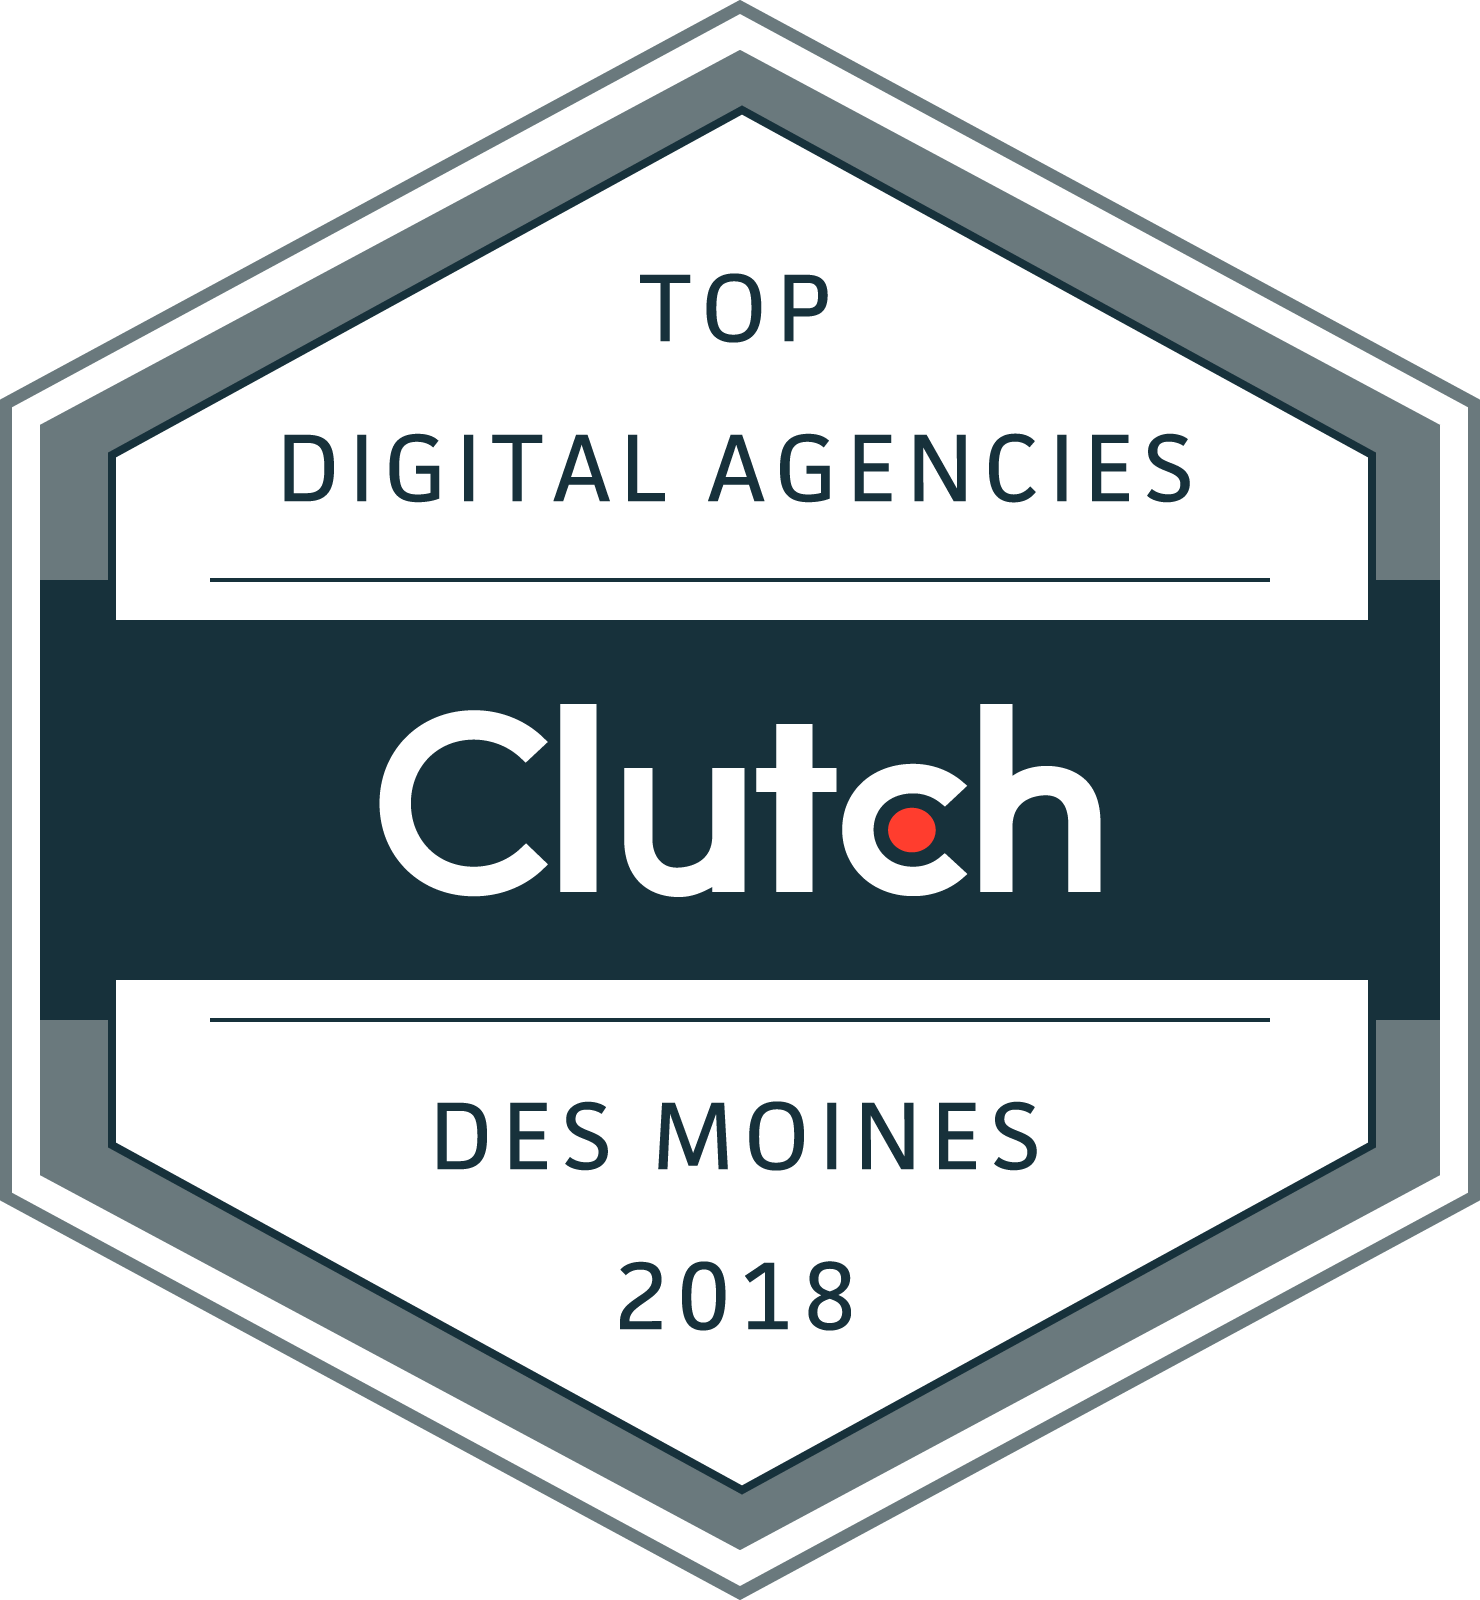 Top Digital Agencies